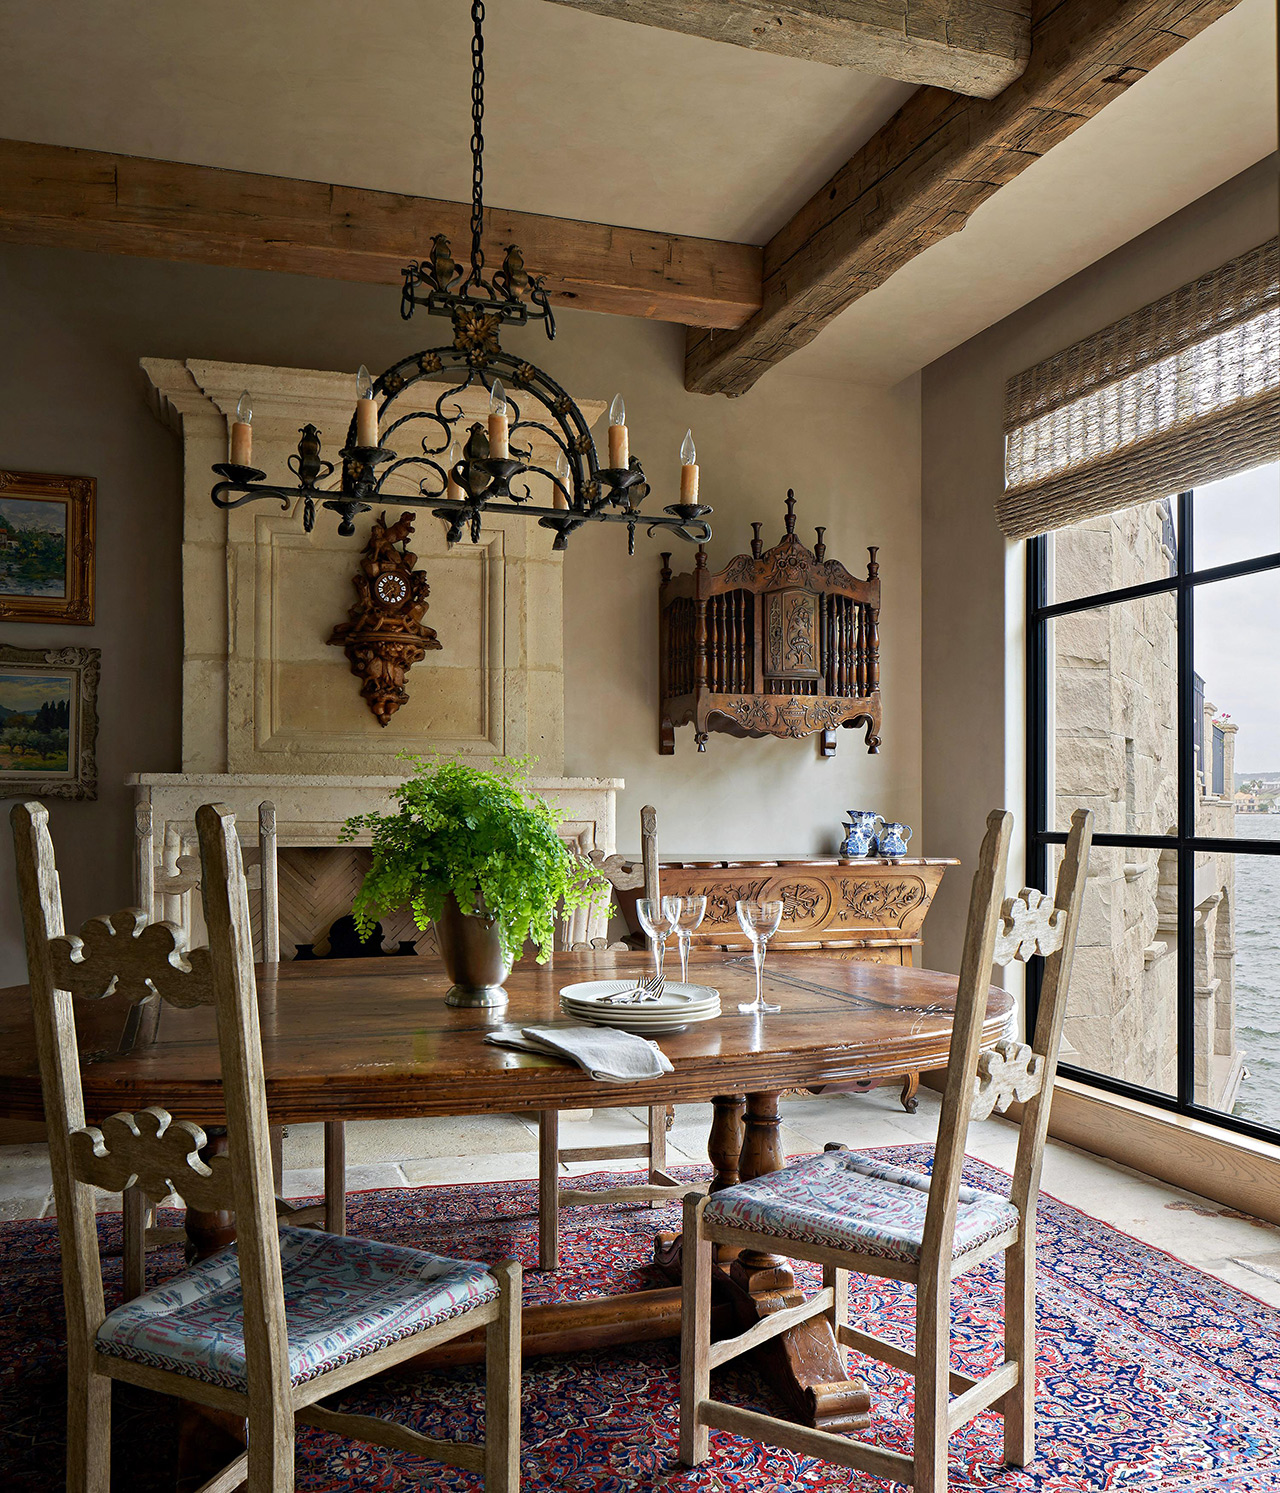 dining room table chairs by window